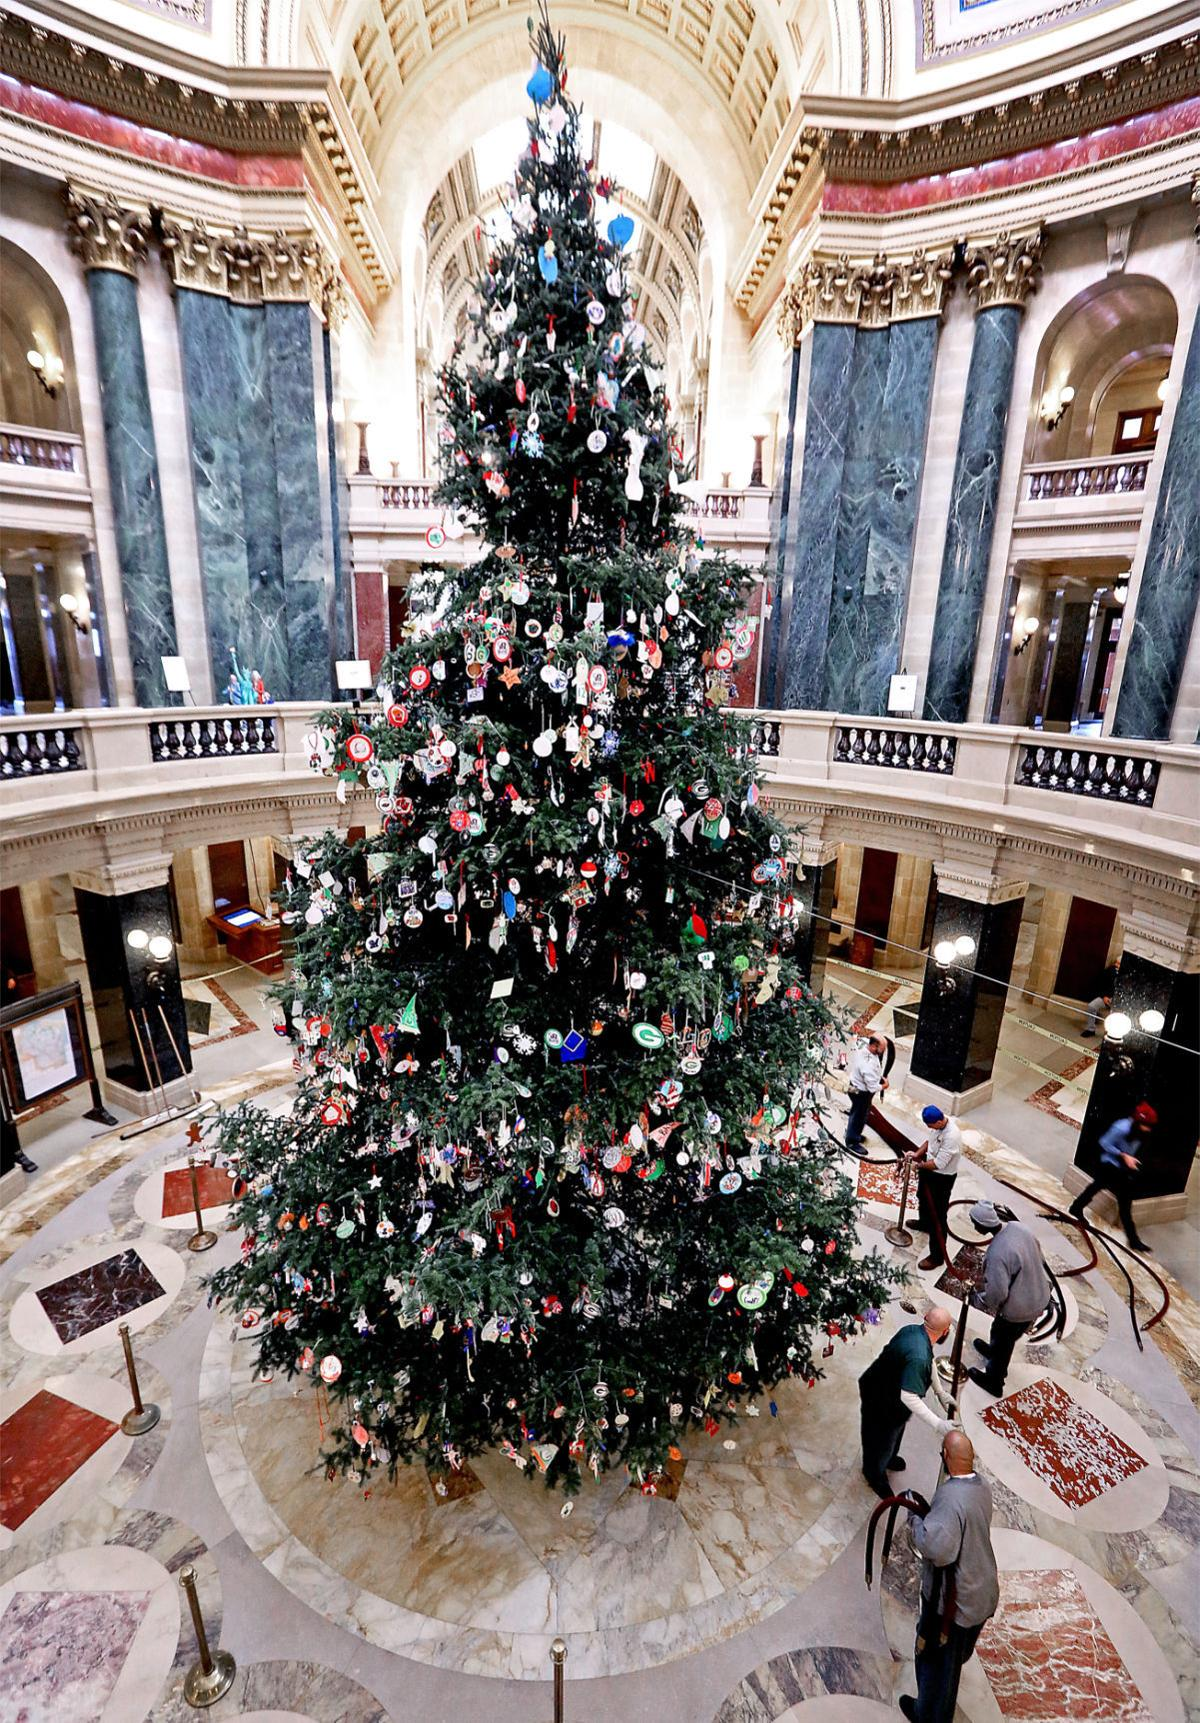 Wisconsin State Capitol Christmas Tree 2020 Wisconsin Capitol Christmas Tree 2020 Lighting | Kfdbbq